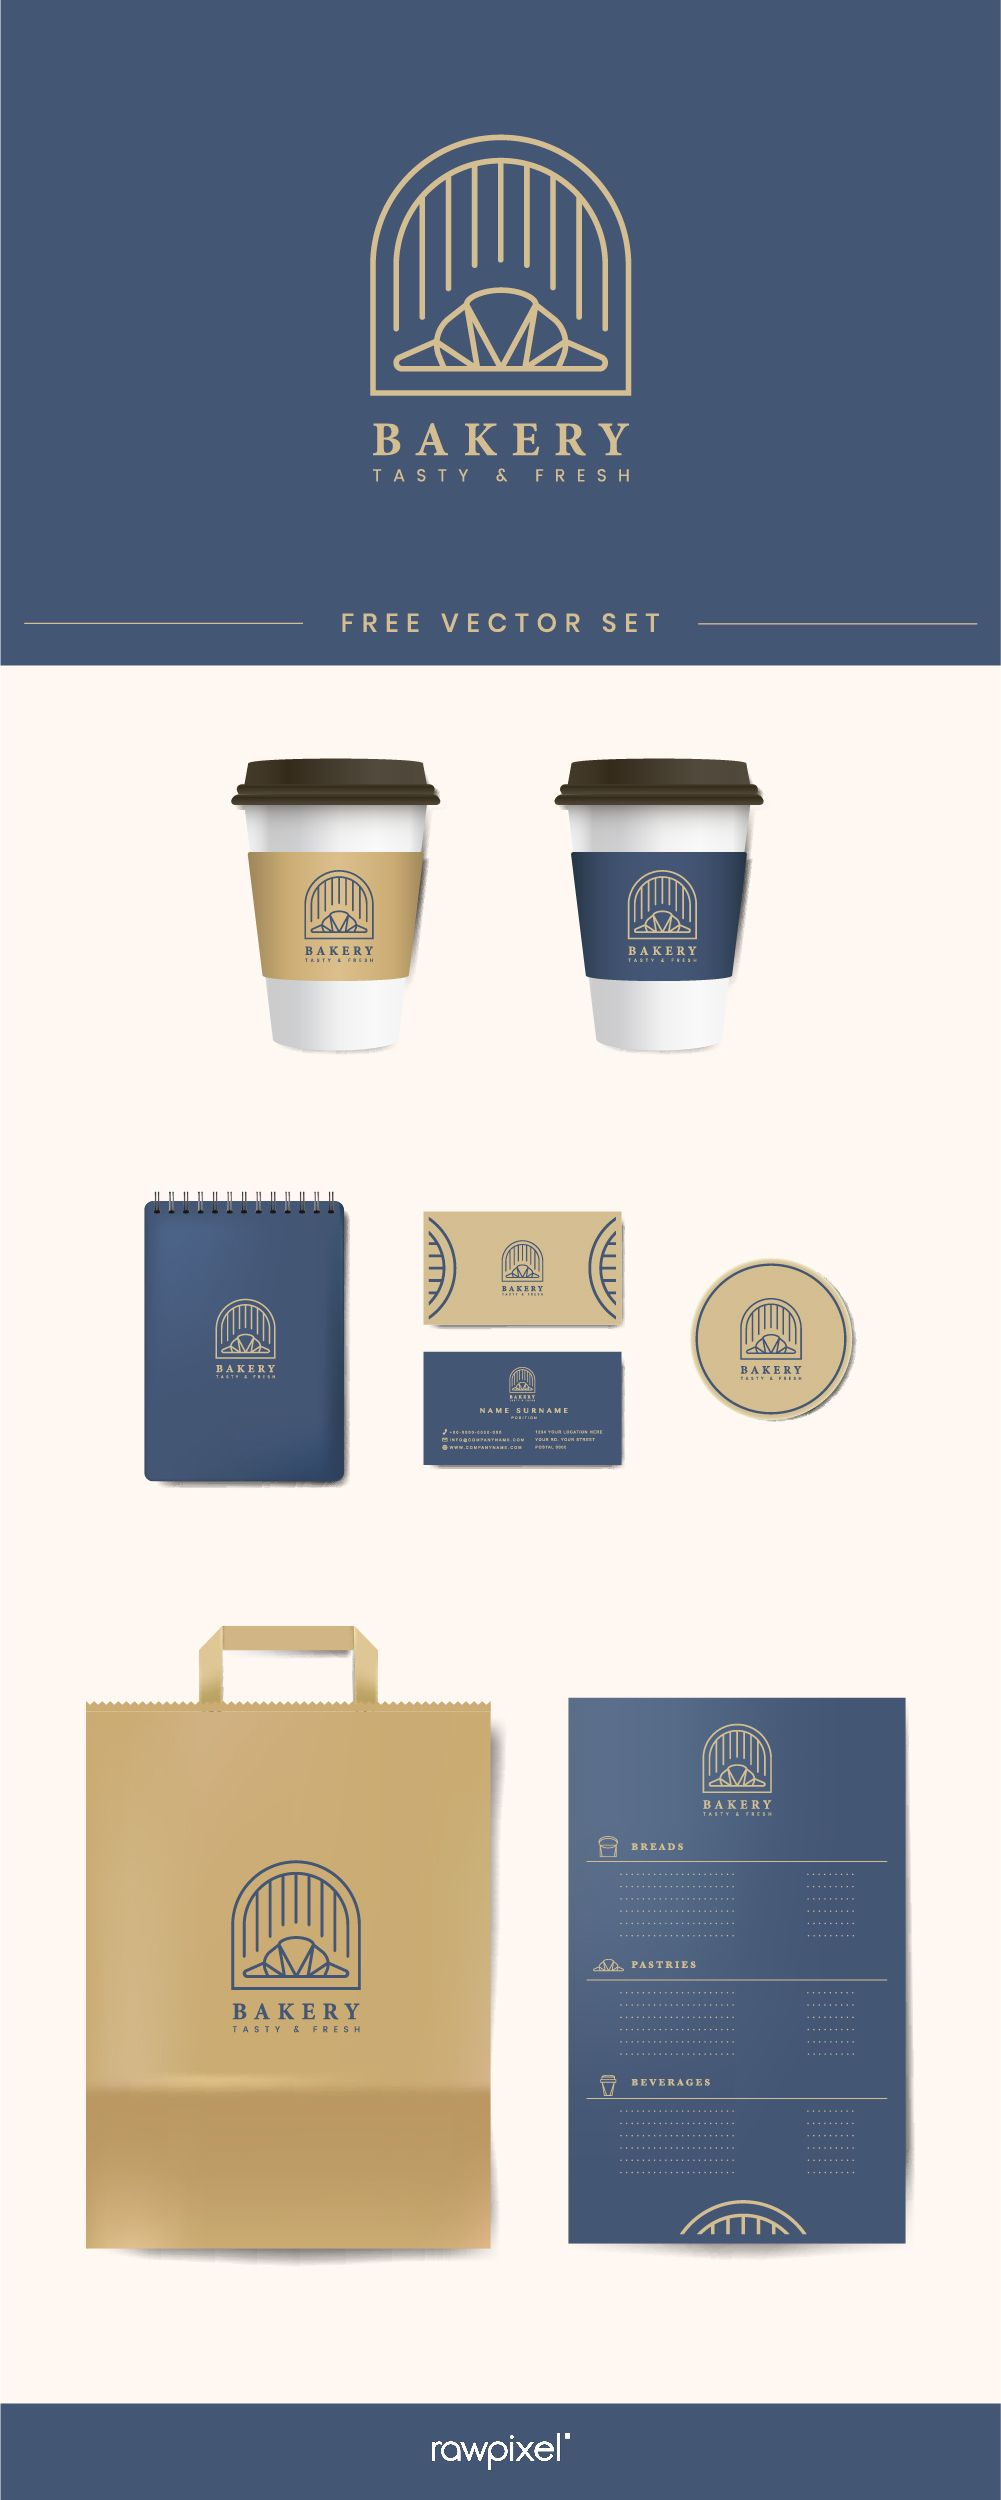 Download These Free Vectors Of Coffee Shop Mockup And Branding Set